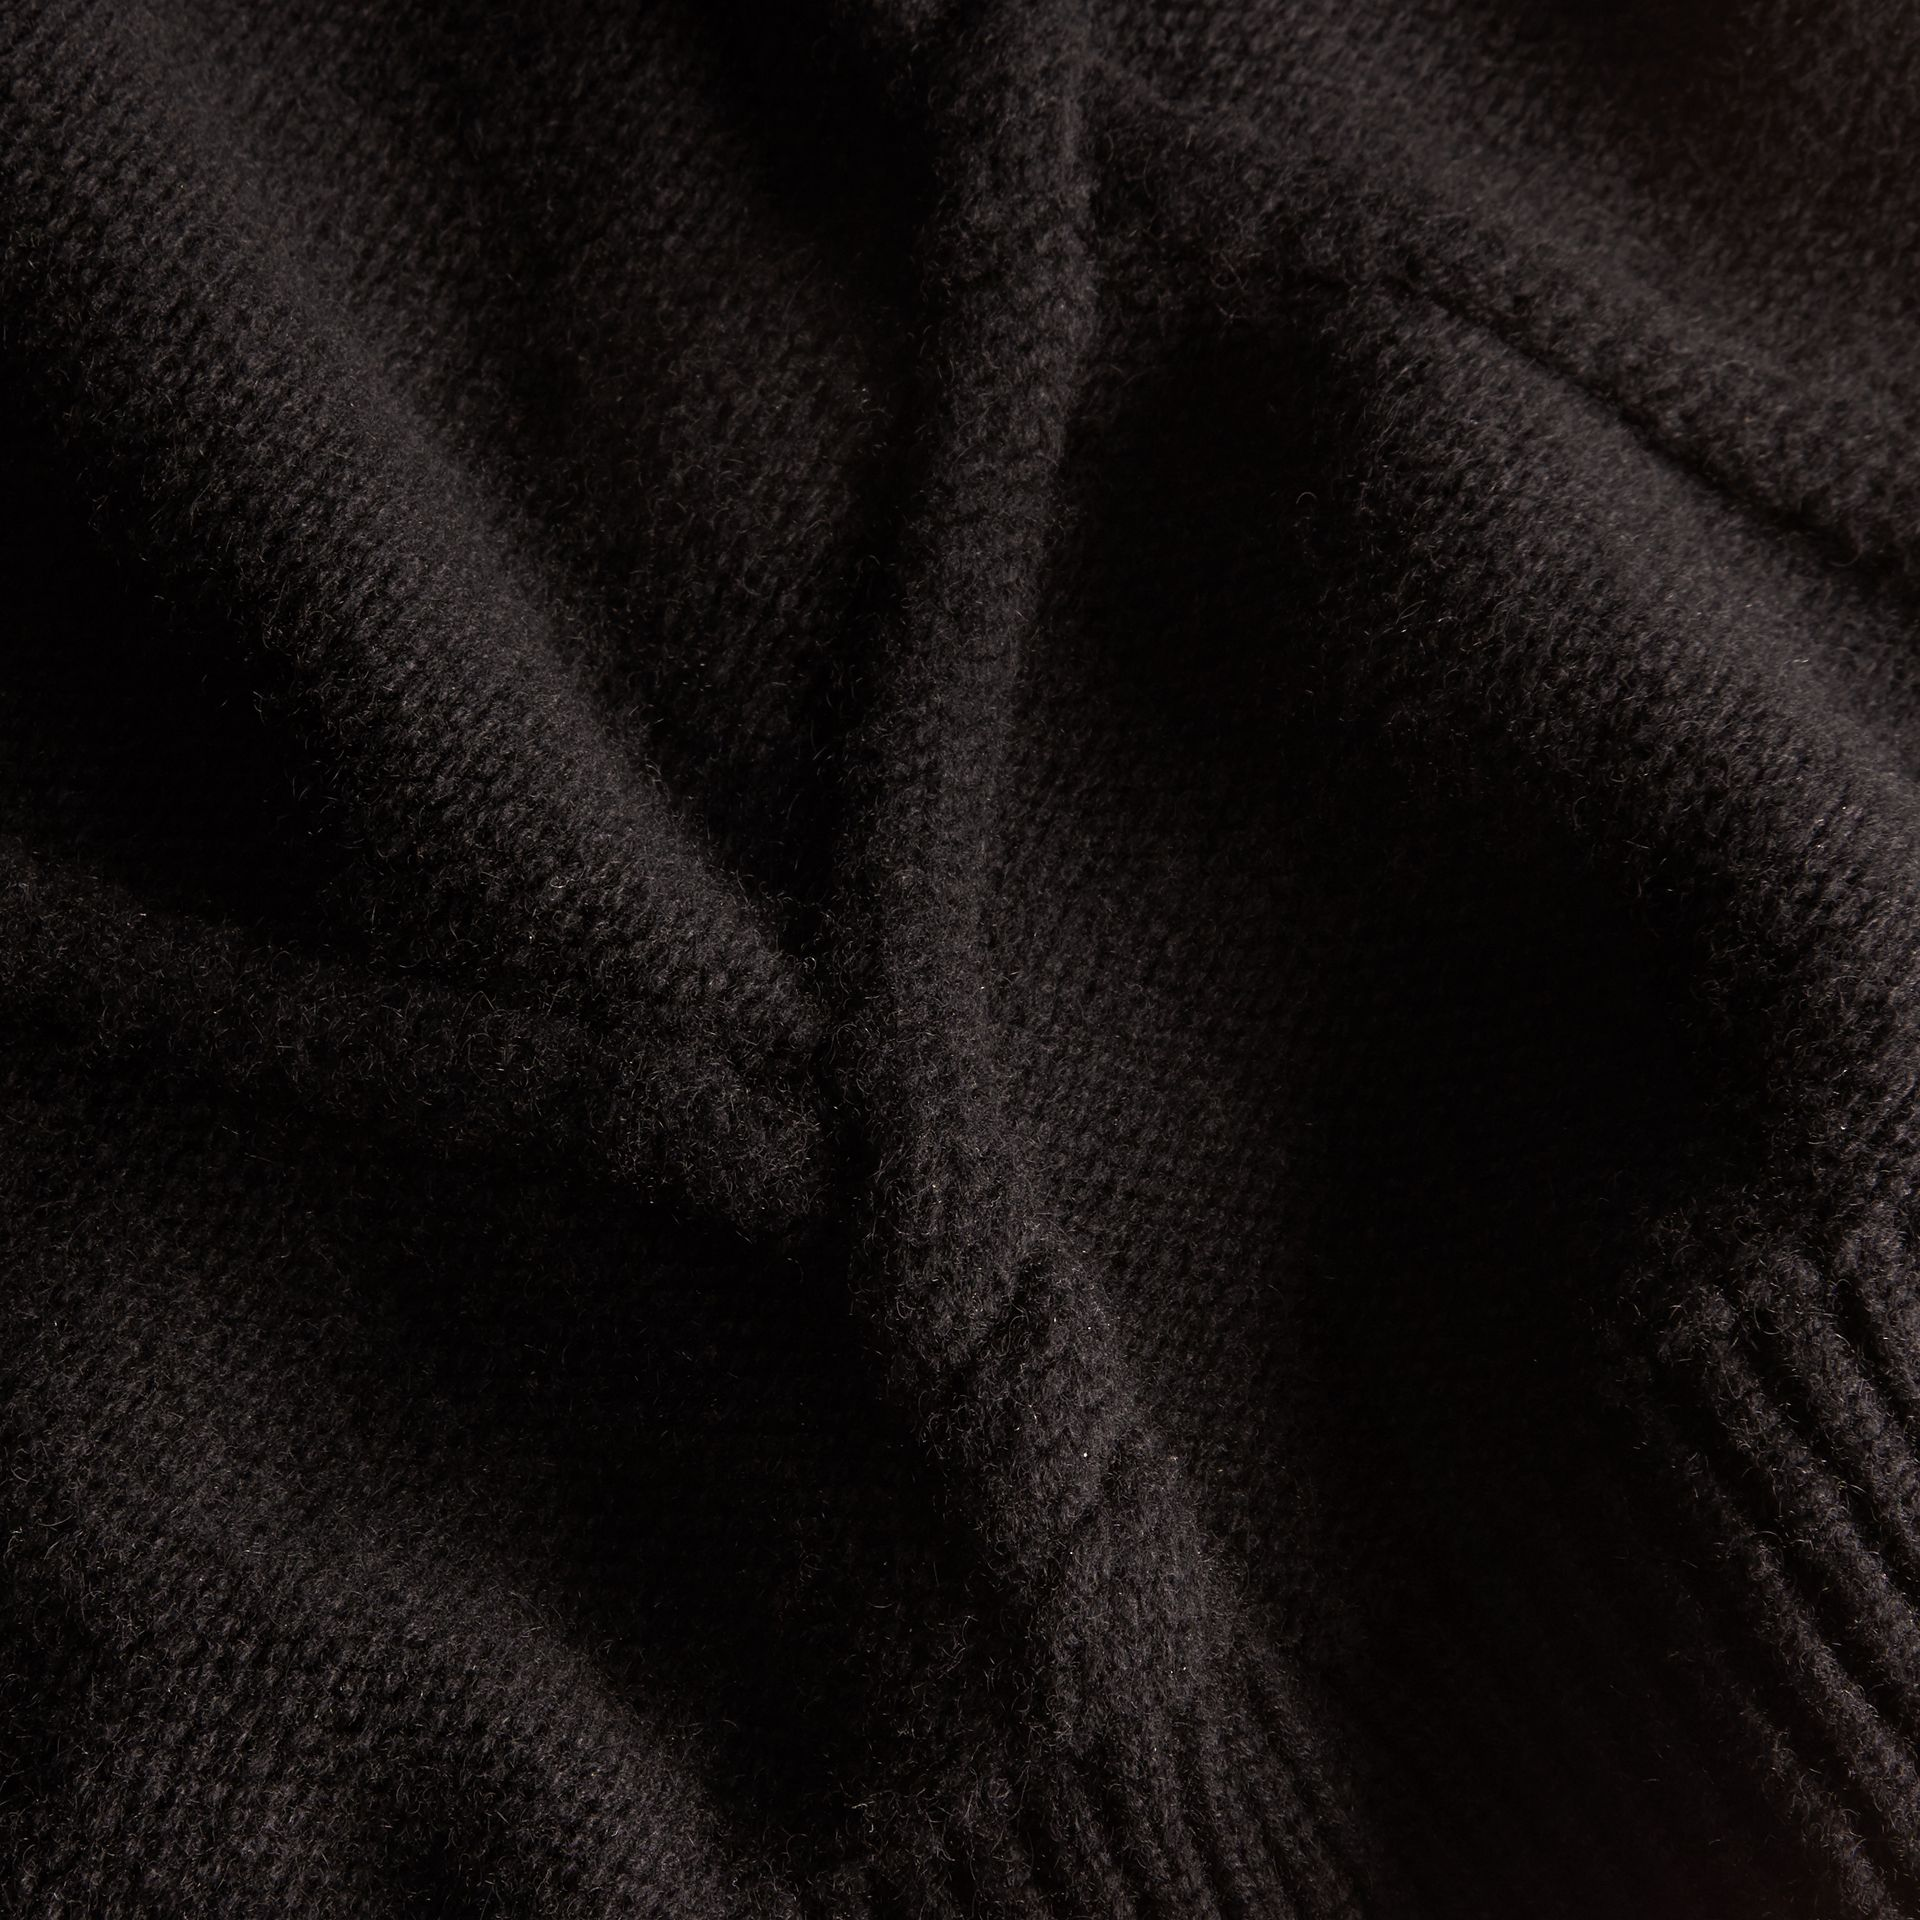 Black Cable Knit Wool Cashmere Sweater with Ruffle Bell Sleeves Black - gallery image 2